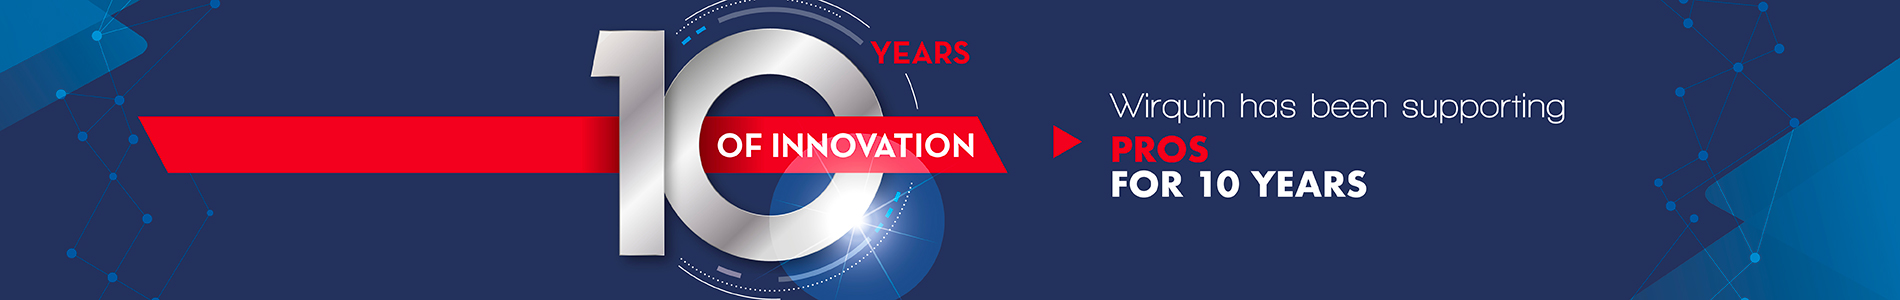 Wirquin Pro 10 years celebration banner